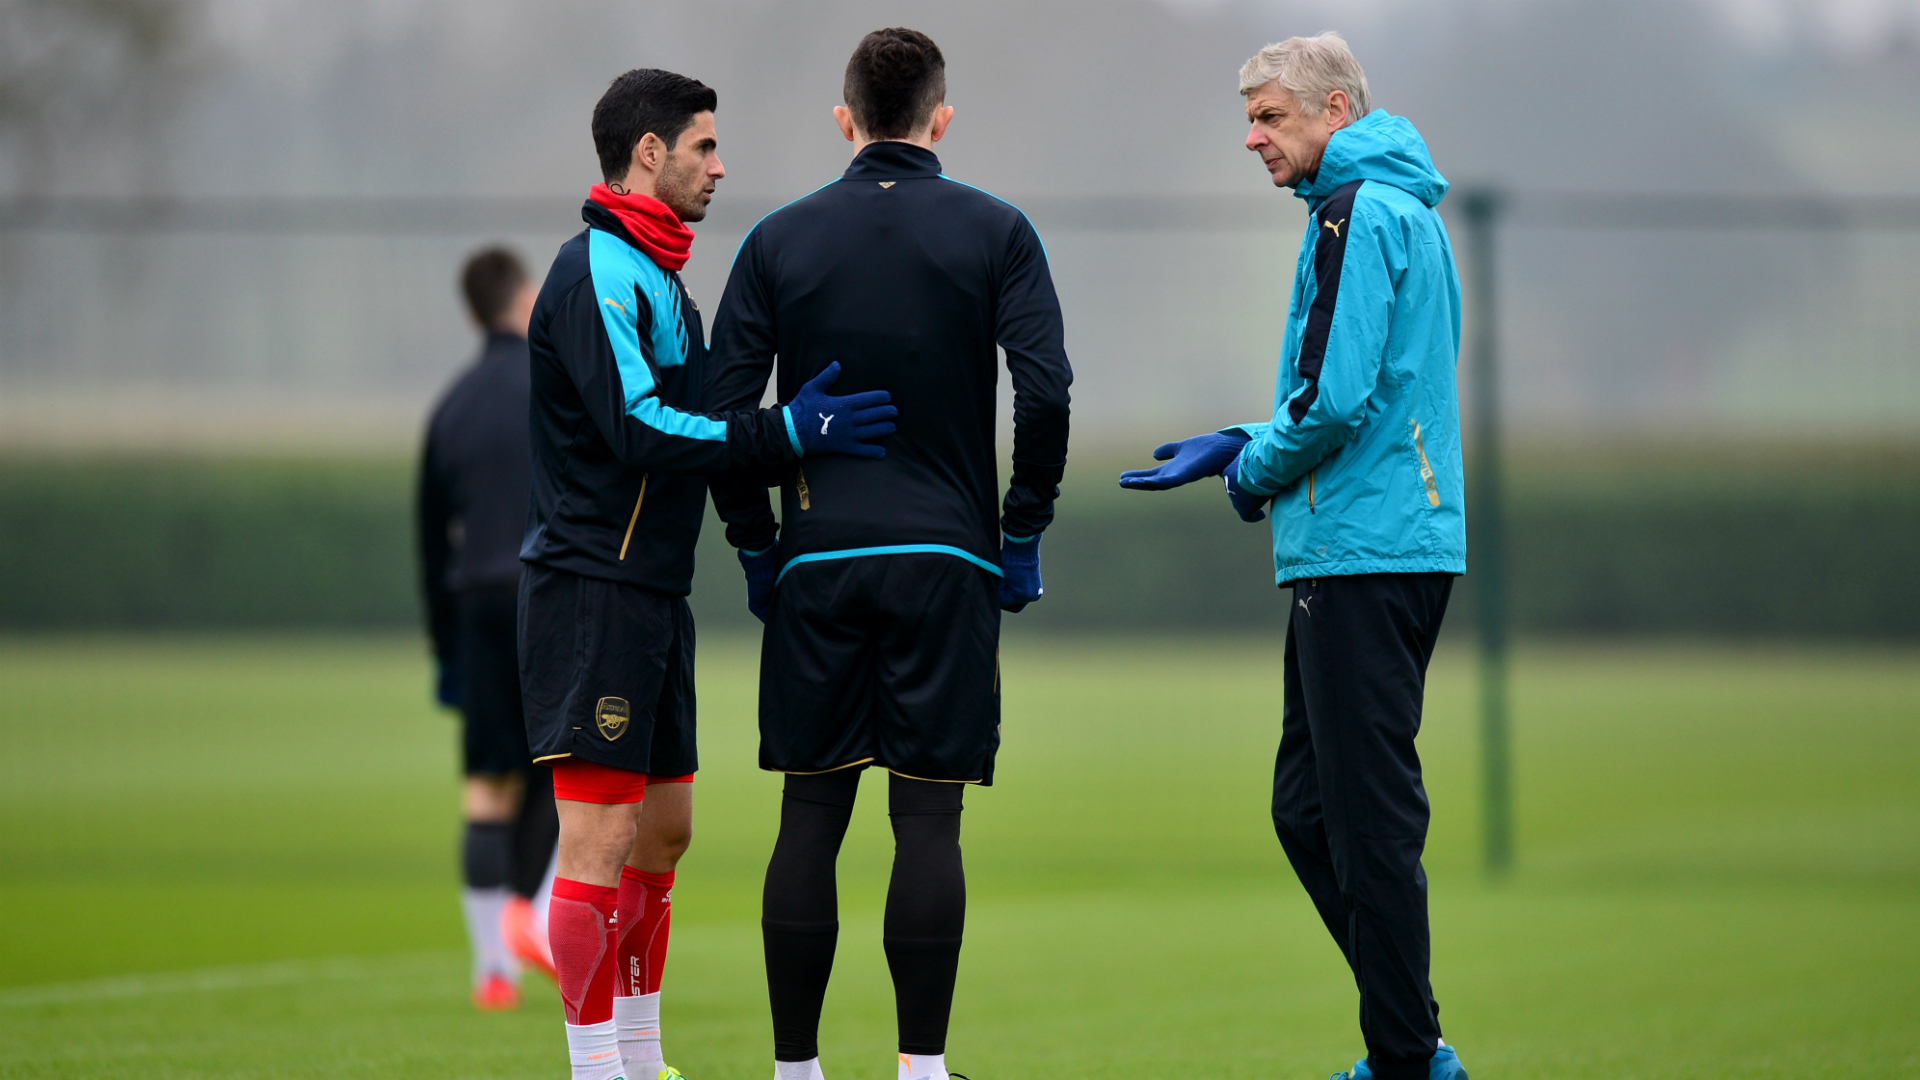 Arsenal appoint Arteta: The Arsene Wenger proteges to move into coaching